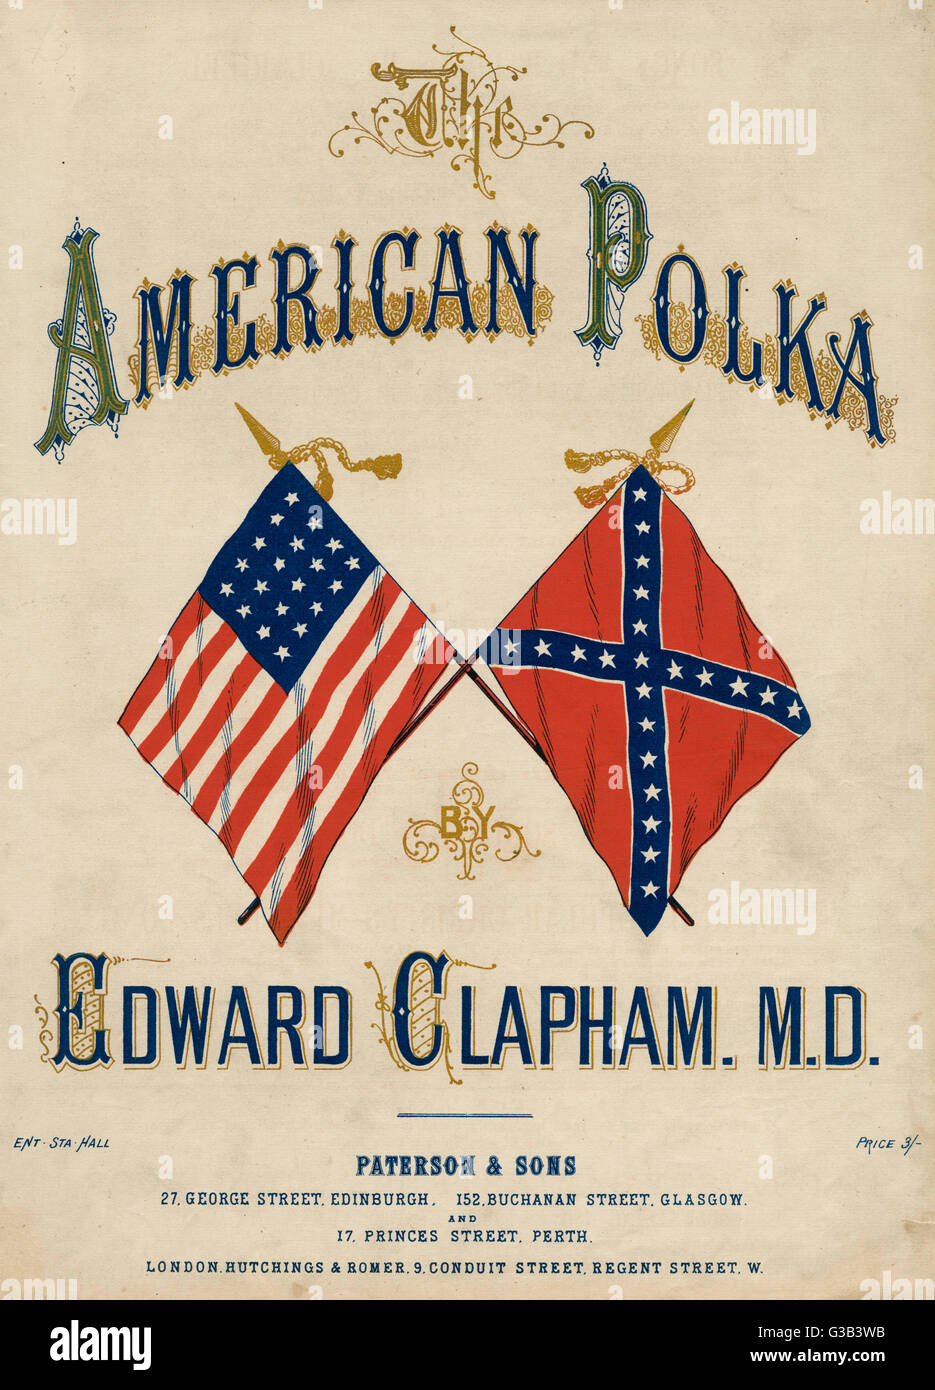 'THE AMERICAN POLKA' The rival flags are featured  on the cover of this topical  musical piece       Date: - Stock Image